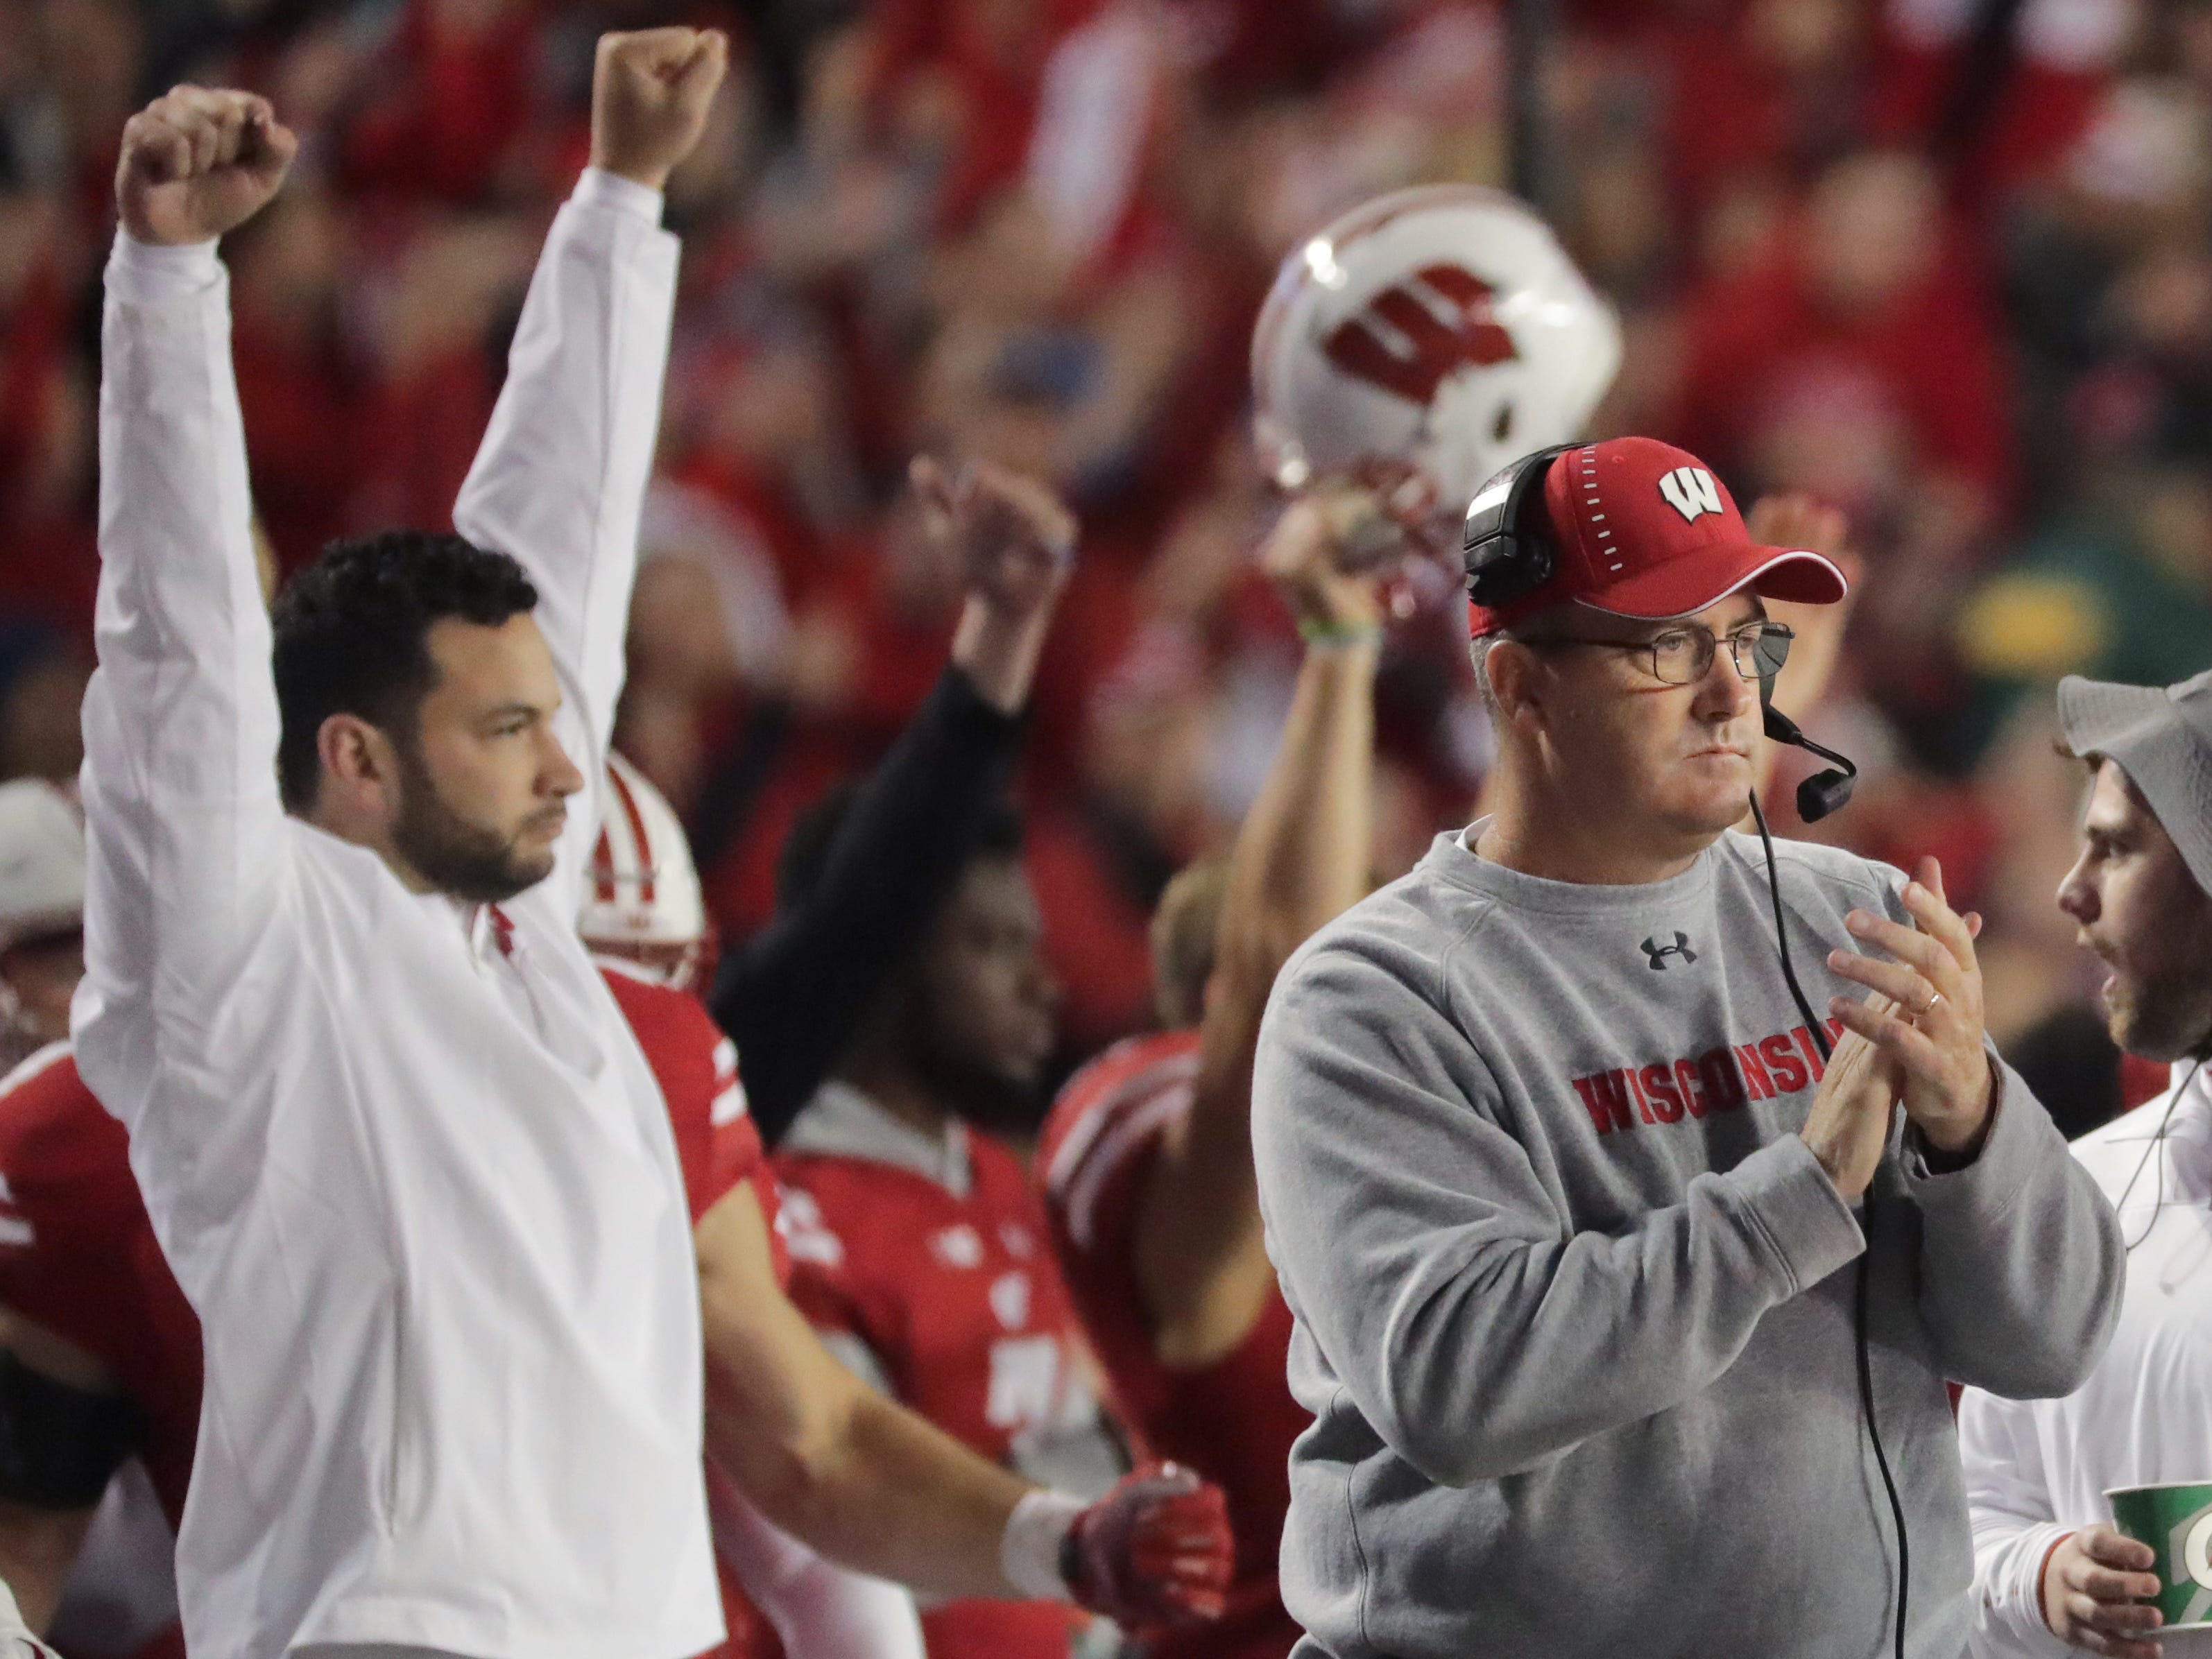 Badgers head coach Paul Chryst (right) reacts after a review showed that running back Jonathan Taylor scored a touchdown during the second quarter against Nebraska on Saturday night.